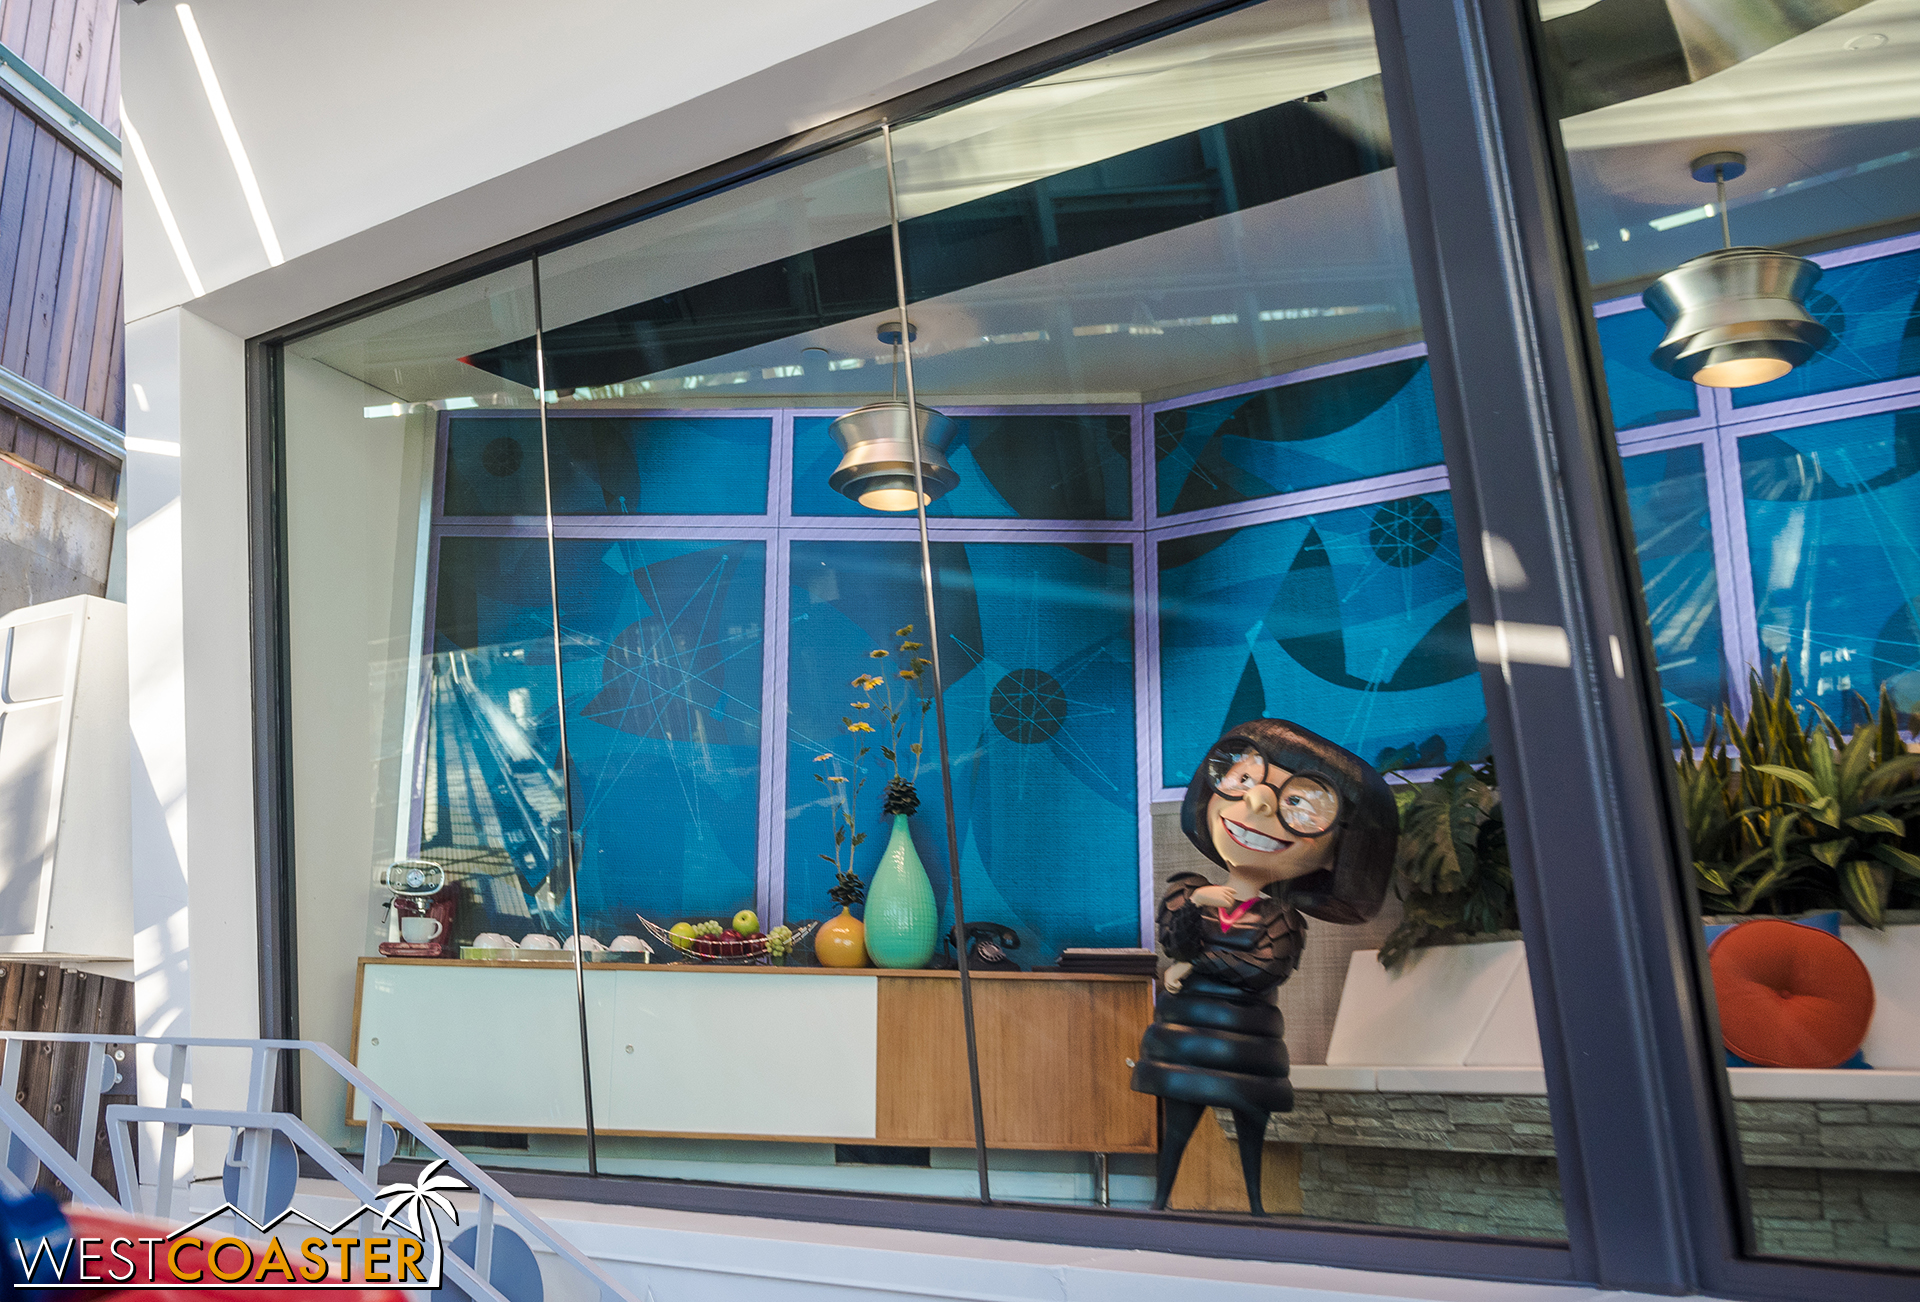 I wish Edna was an animatronic—even a simple one.  The Jack Jack teleporting effects are nice, though.  A rare moment of dynamic theming.